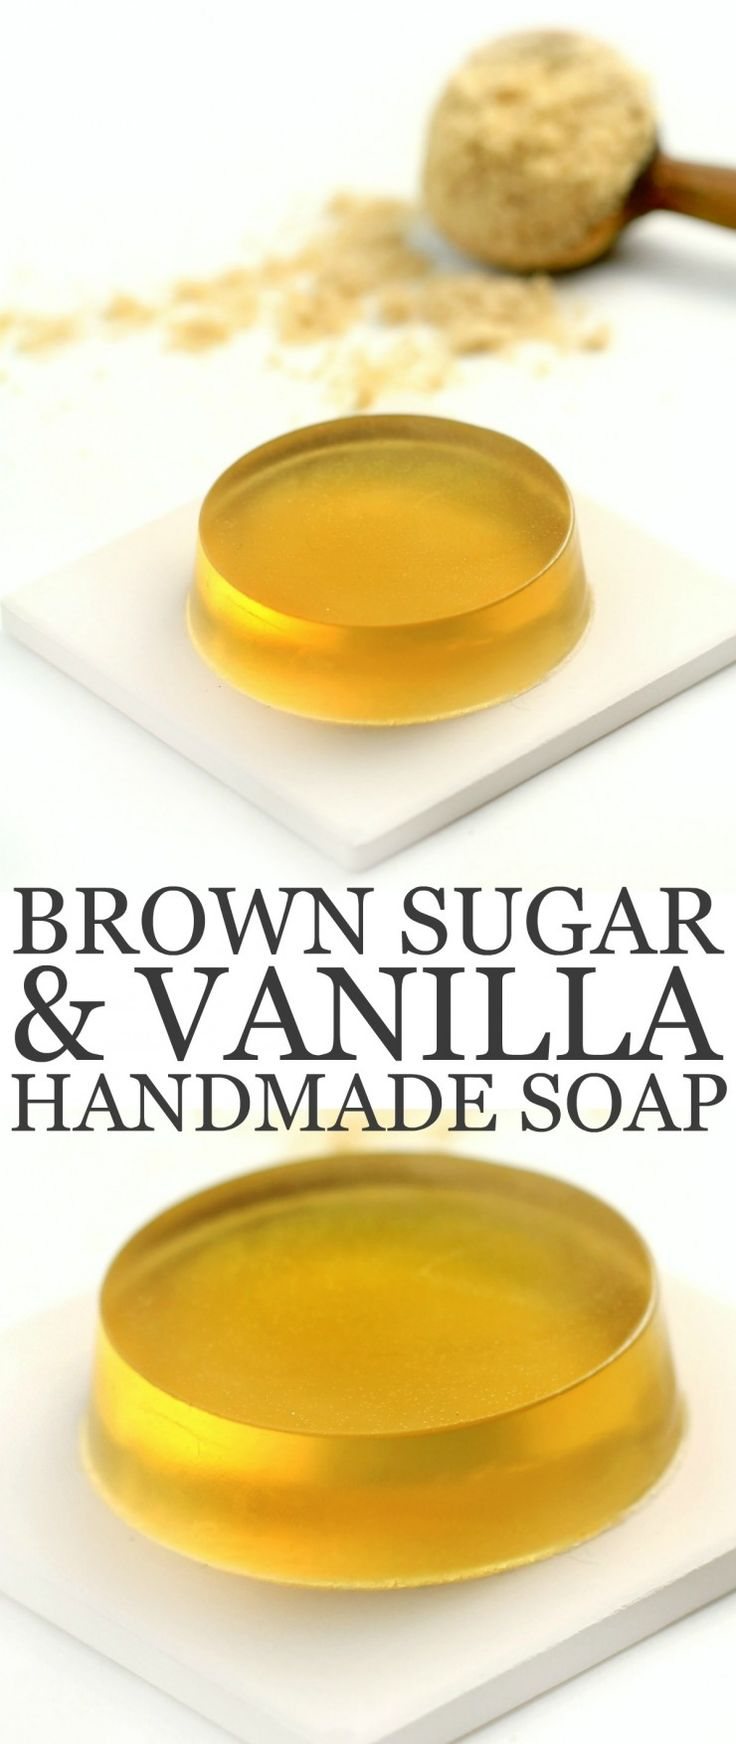 The Brown Sugar in this Brown Sugar and Vanilla Handmade Soap gives it a beautiful translucent golden colour with a light and sweet scent enhanced by the vanilla essential oil.